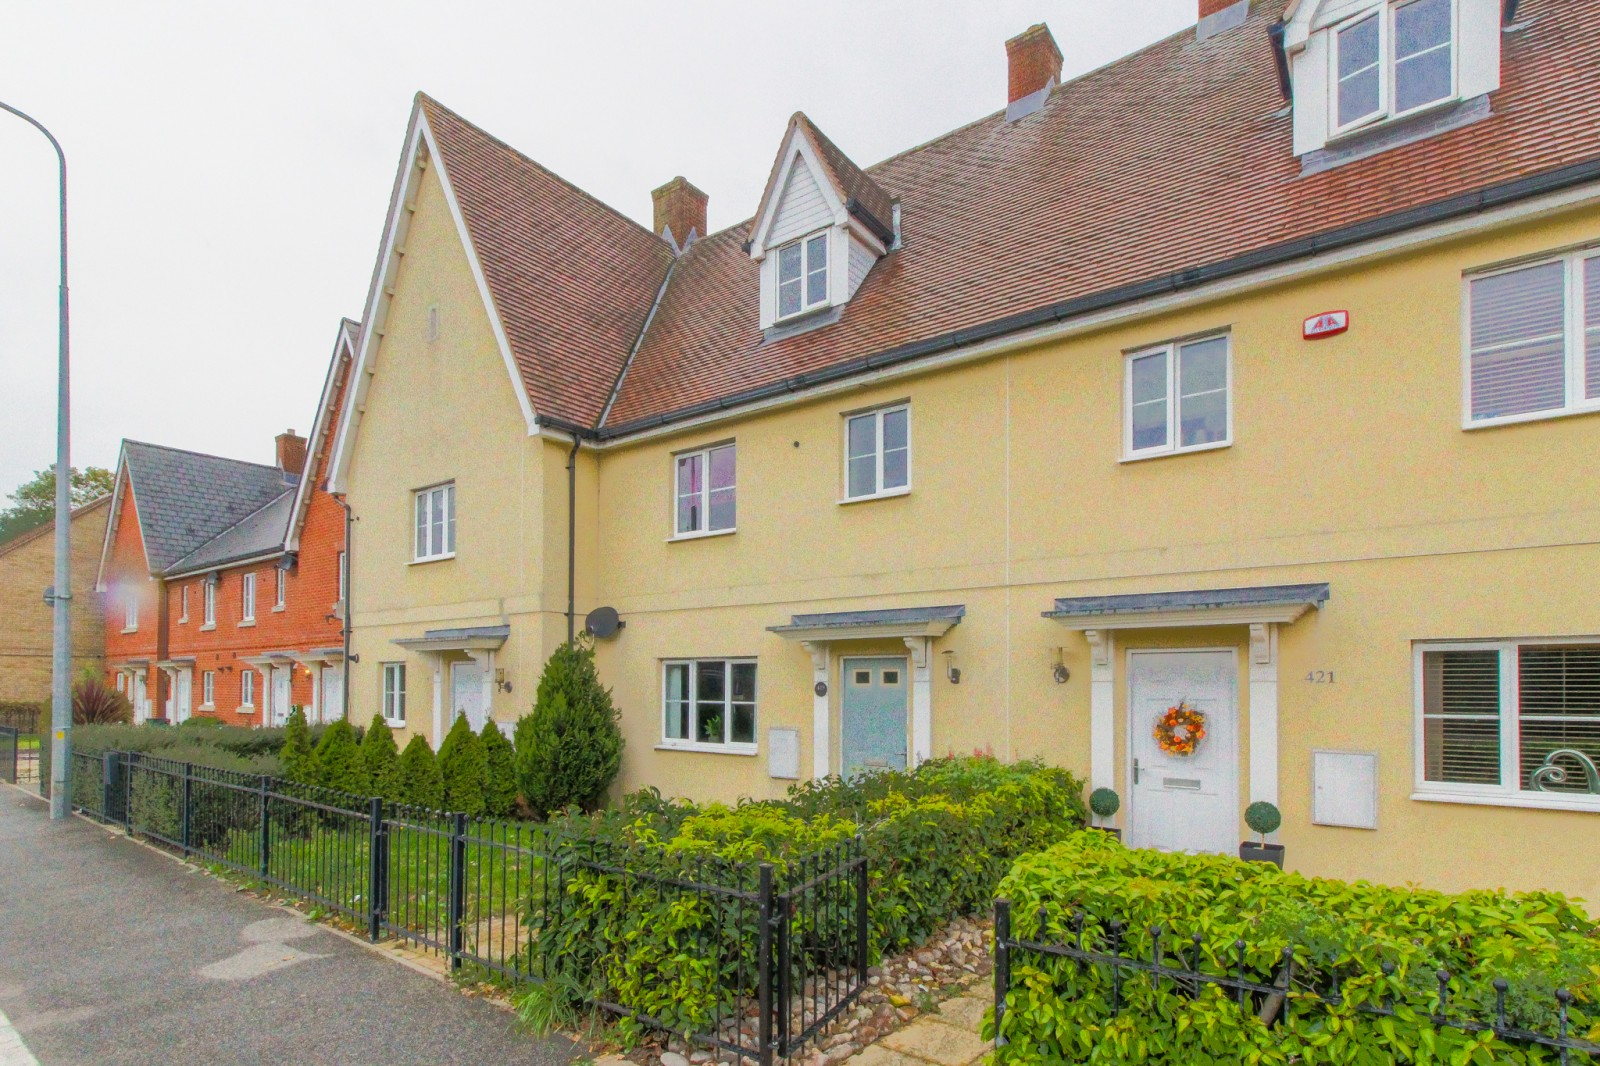 Mill Road, Colchester, Essex, CO4